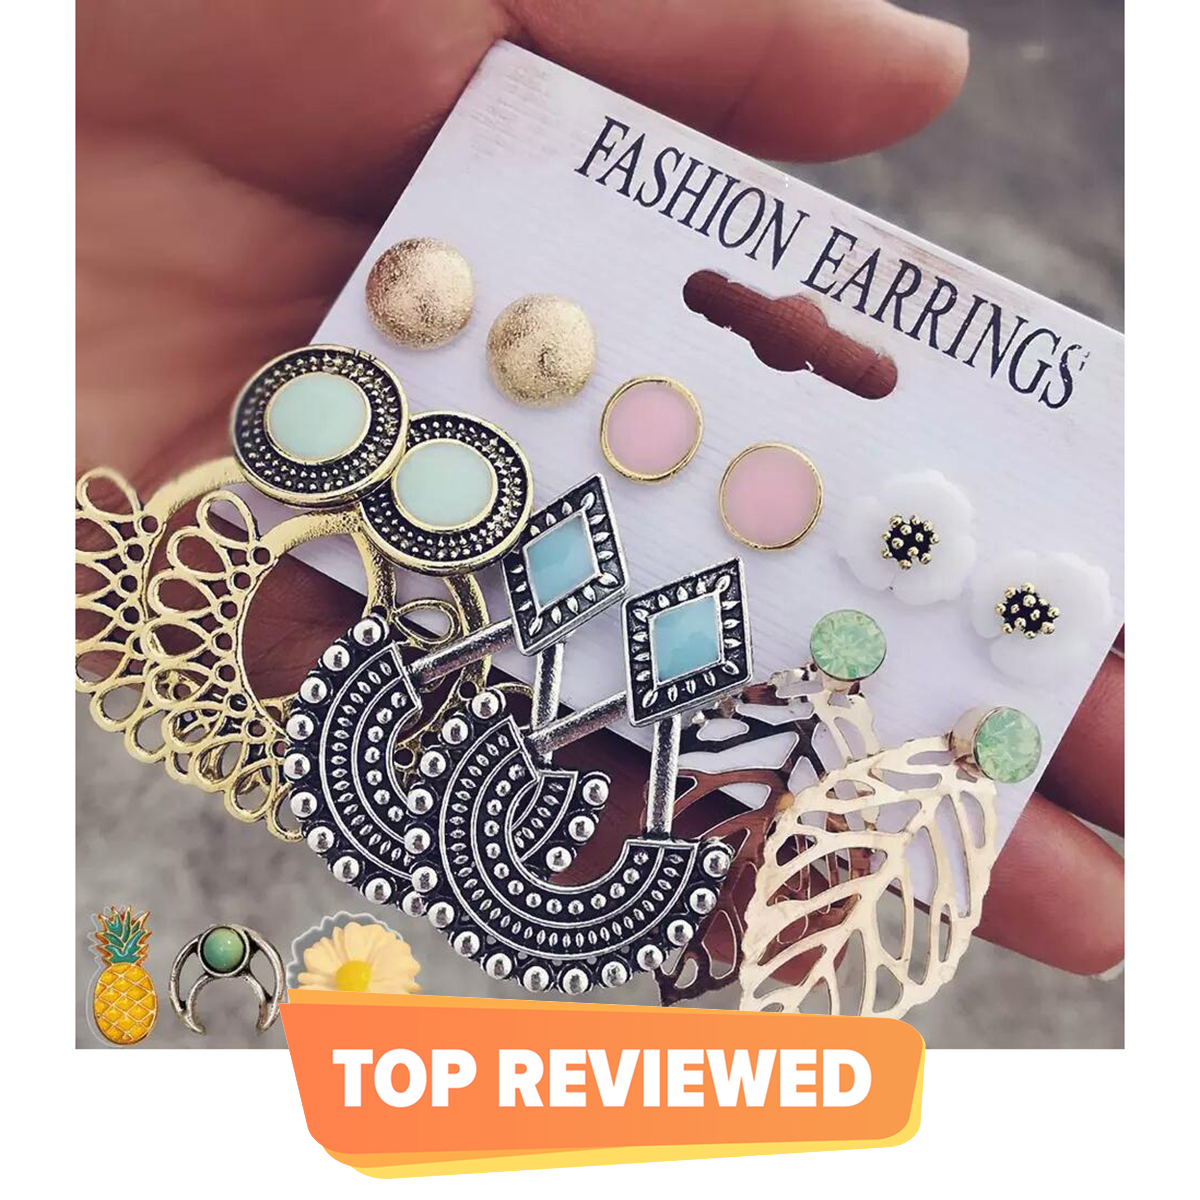 6 pairs New Fashion Stud and Drop Earrings set Mixed Pearl and Bohemian Vintage style Jewellery accessories for Women